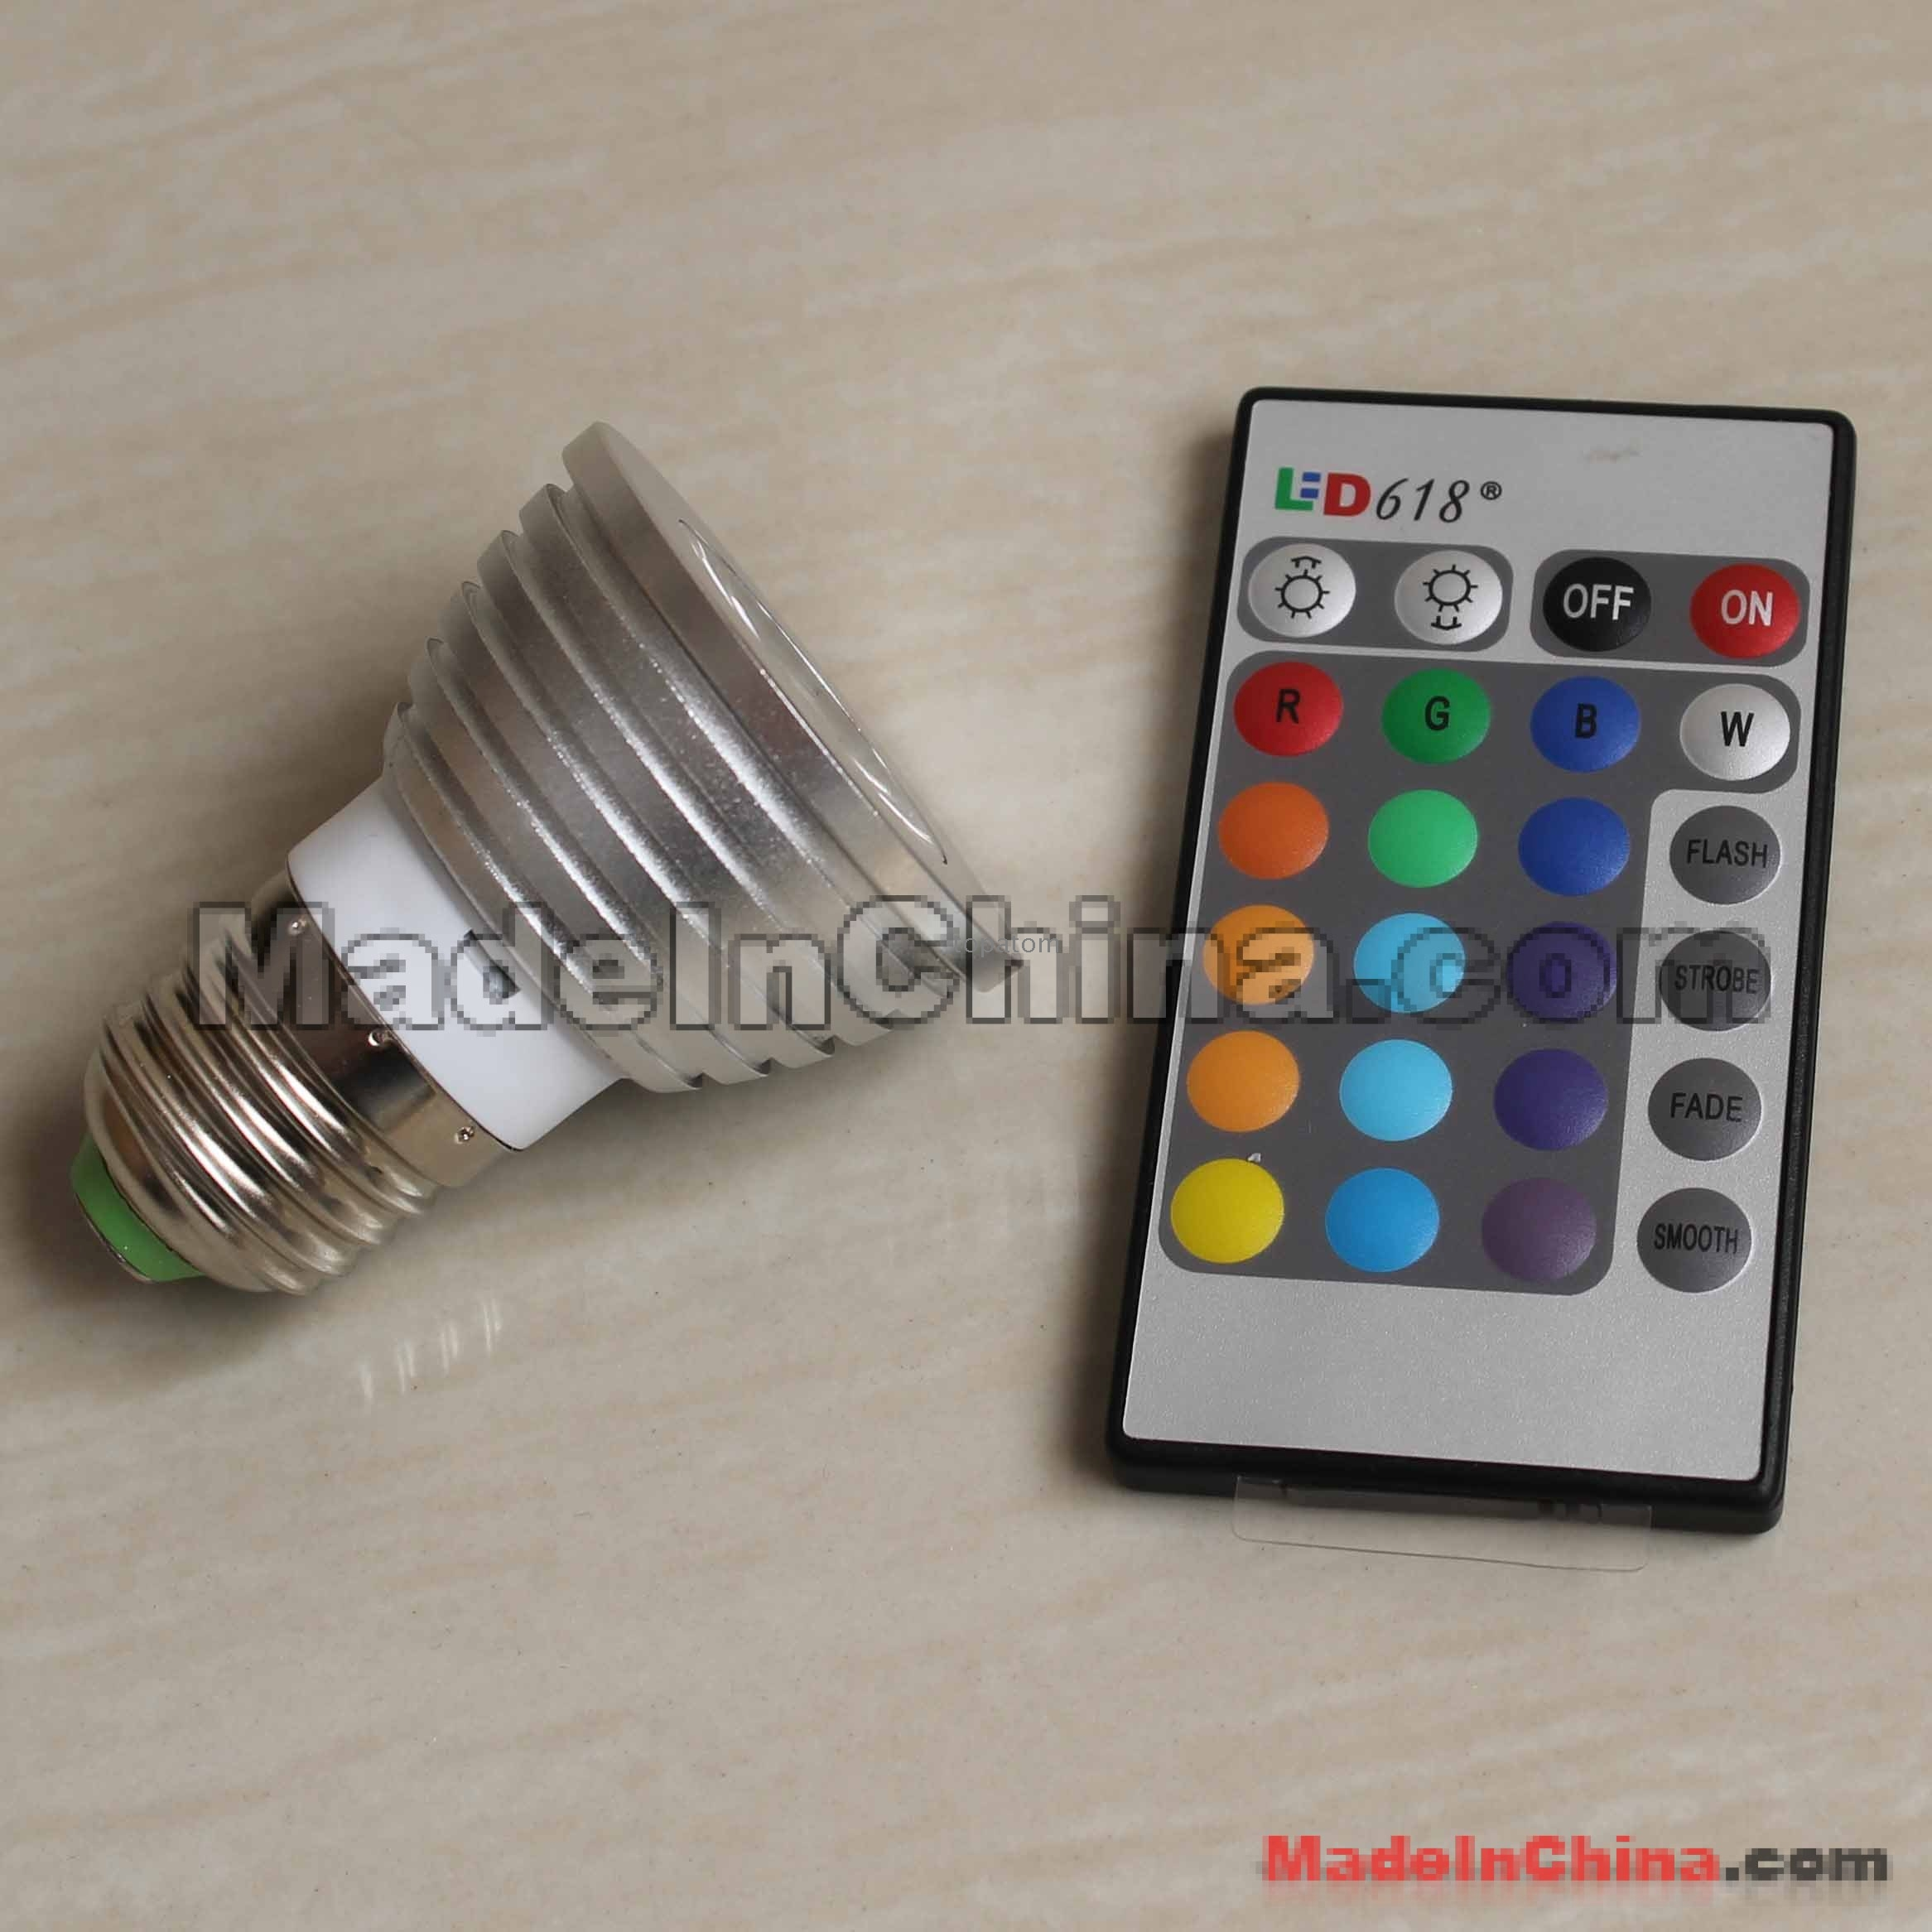 controller – Wholesale 3w e27 RGB led light with remote controller #A87123